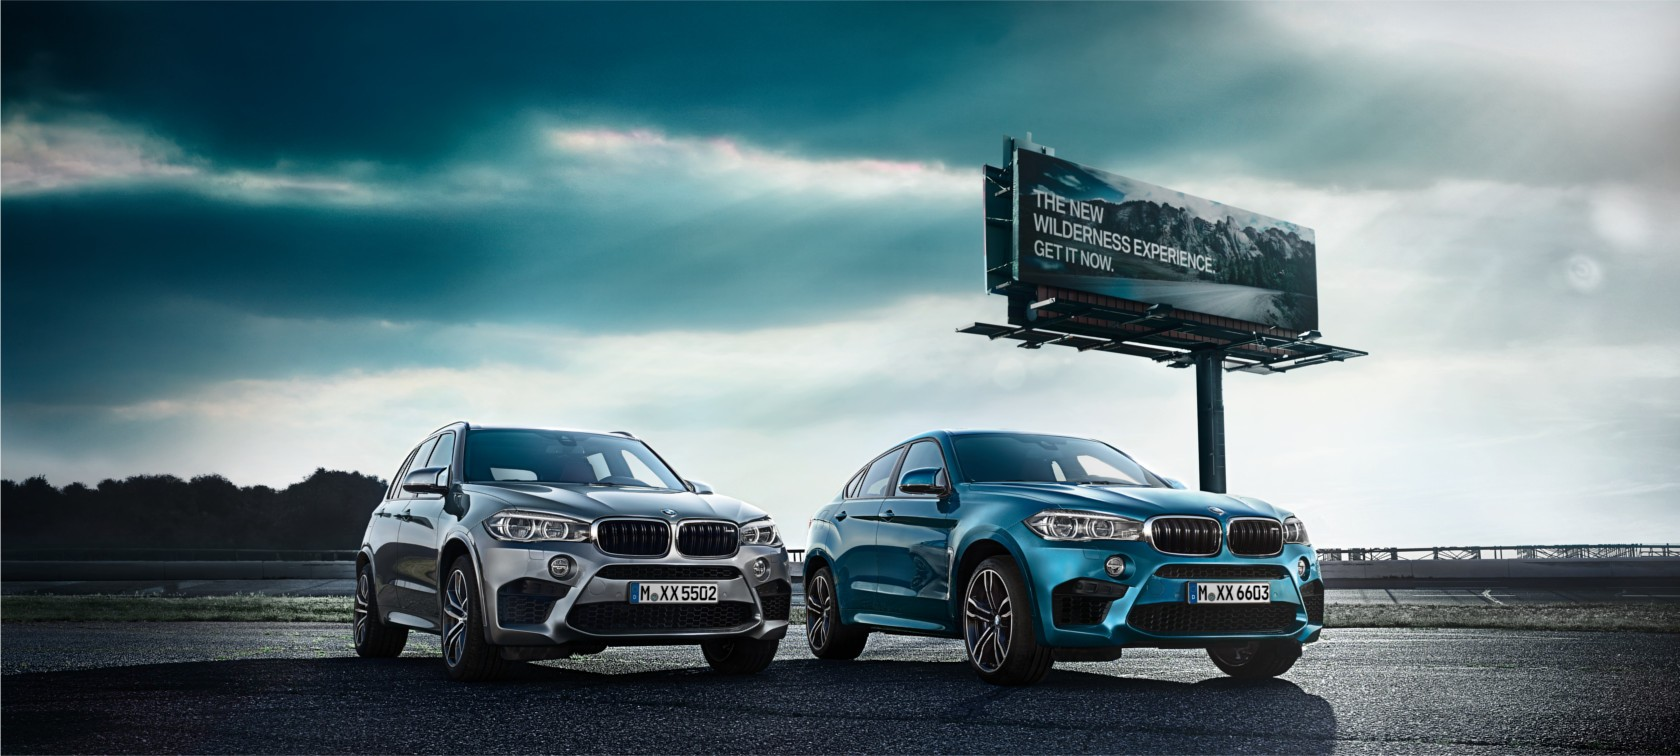 BMW M Serisi X5M M Power Dunyasi